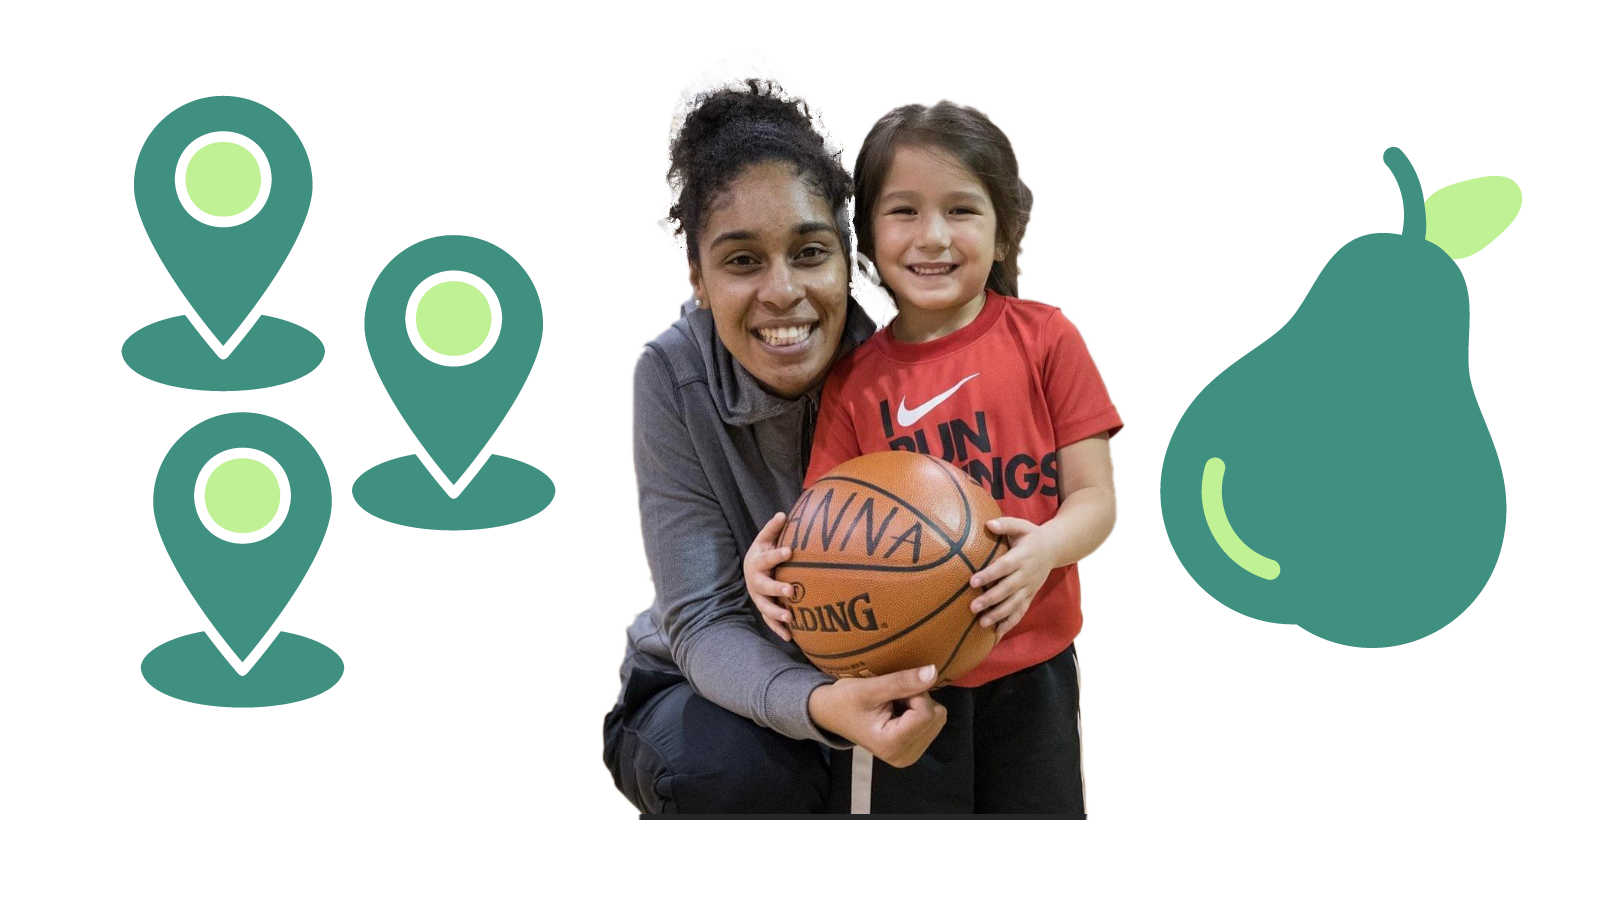 A woman and a girl with a basketball, surrounded by icons representing locations within Pearland, Texas